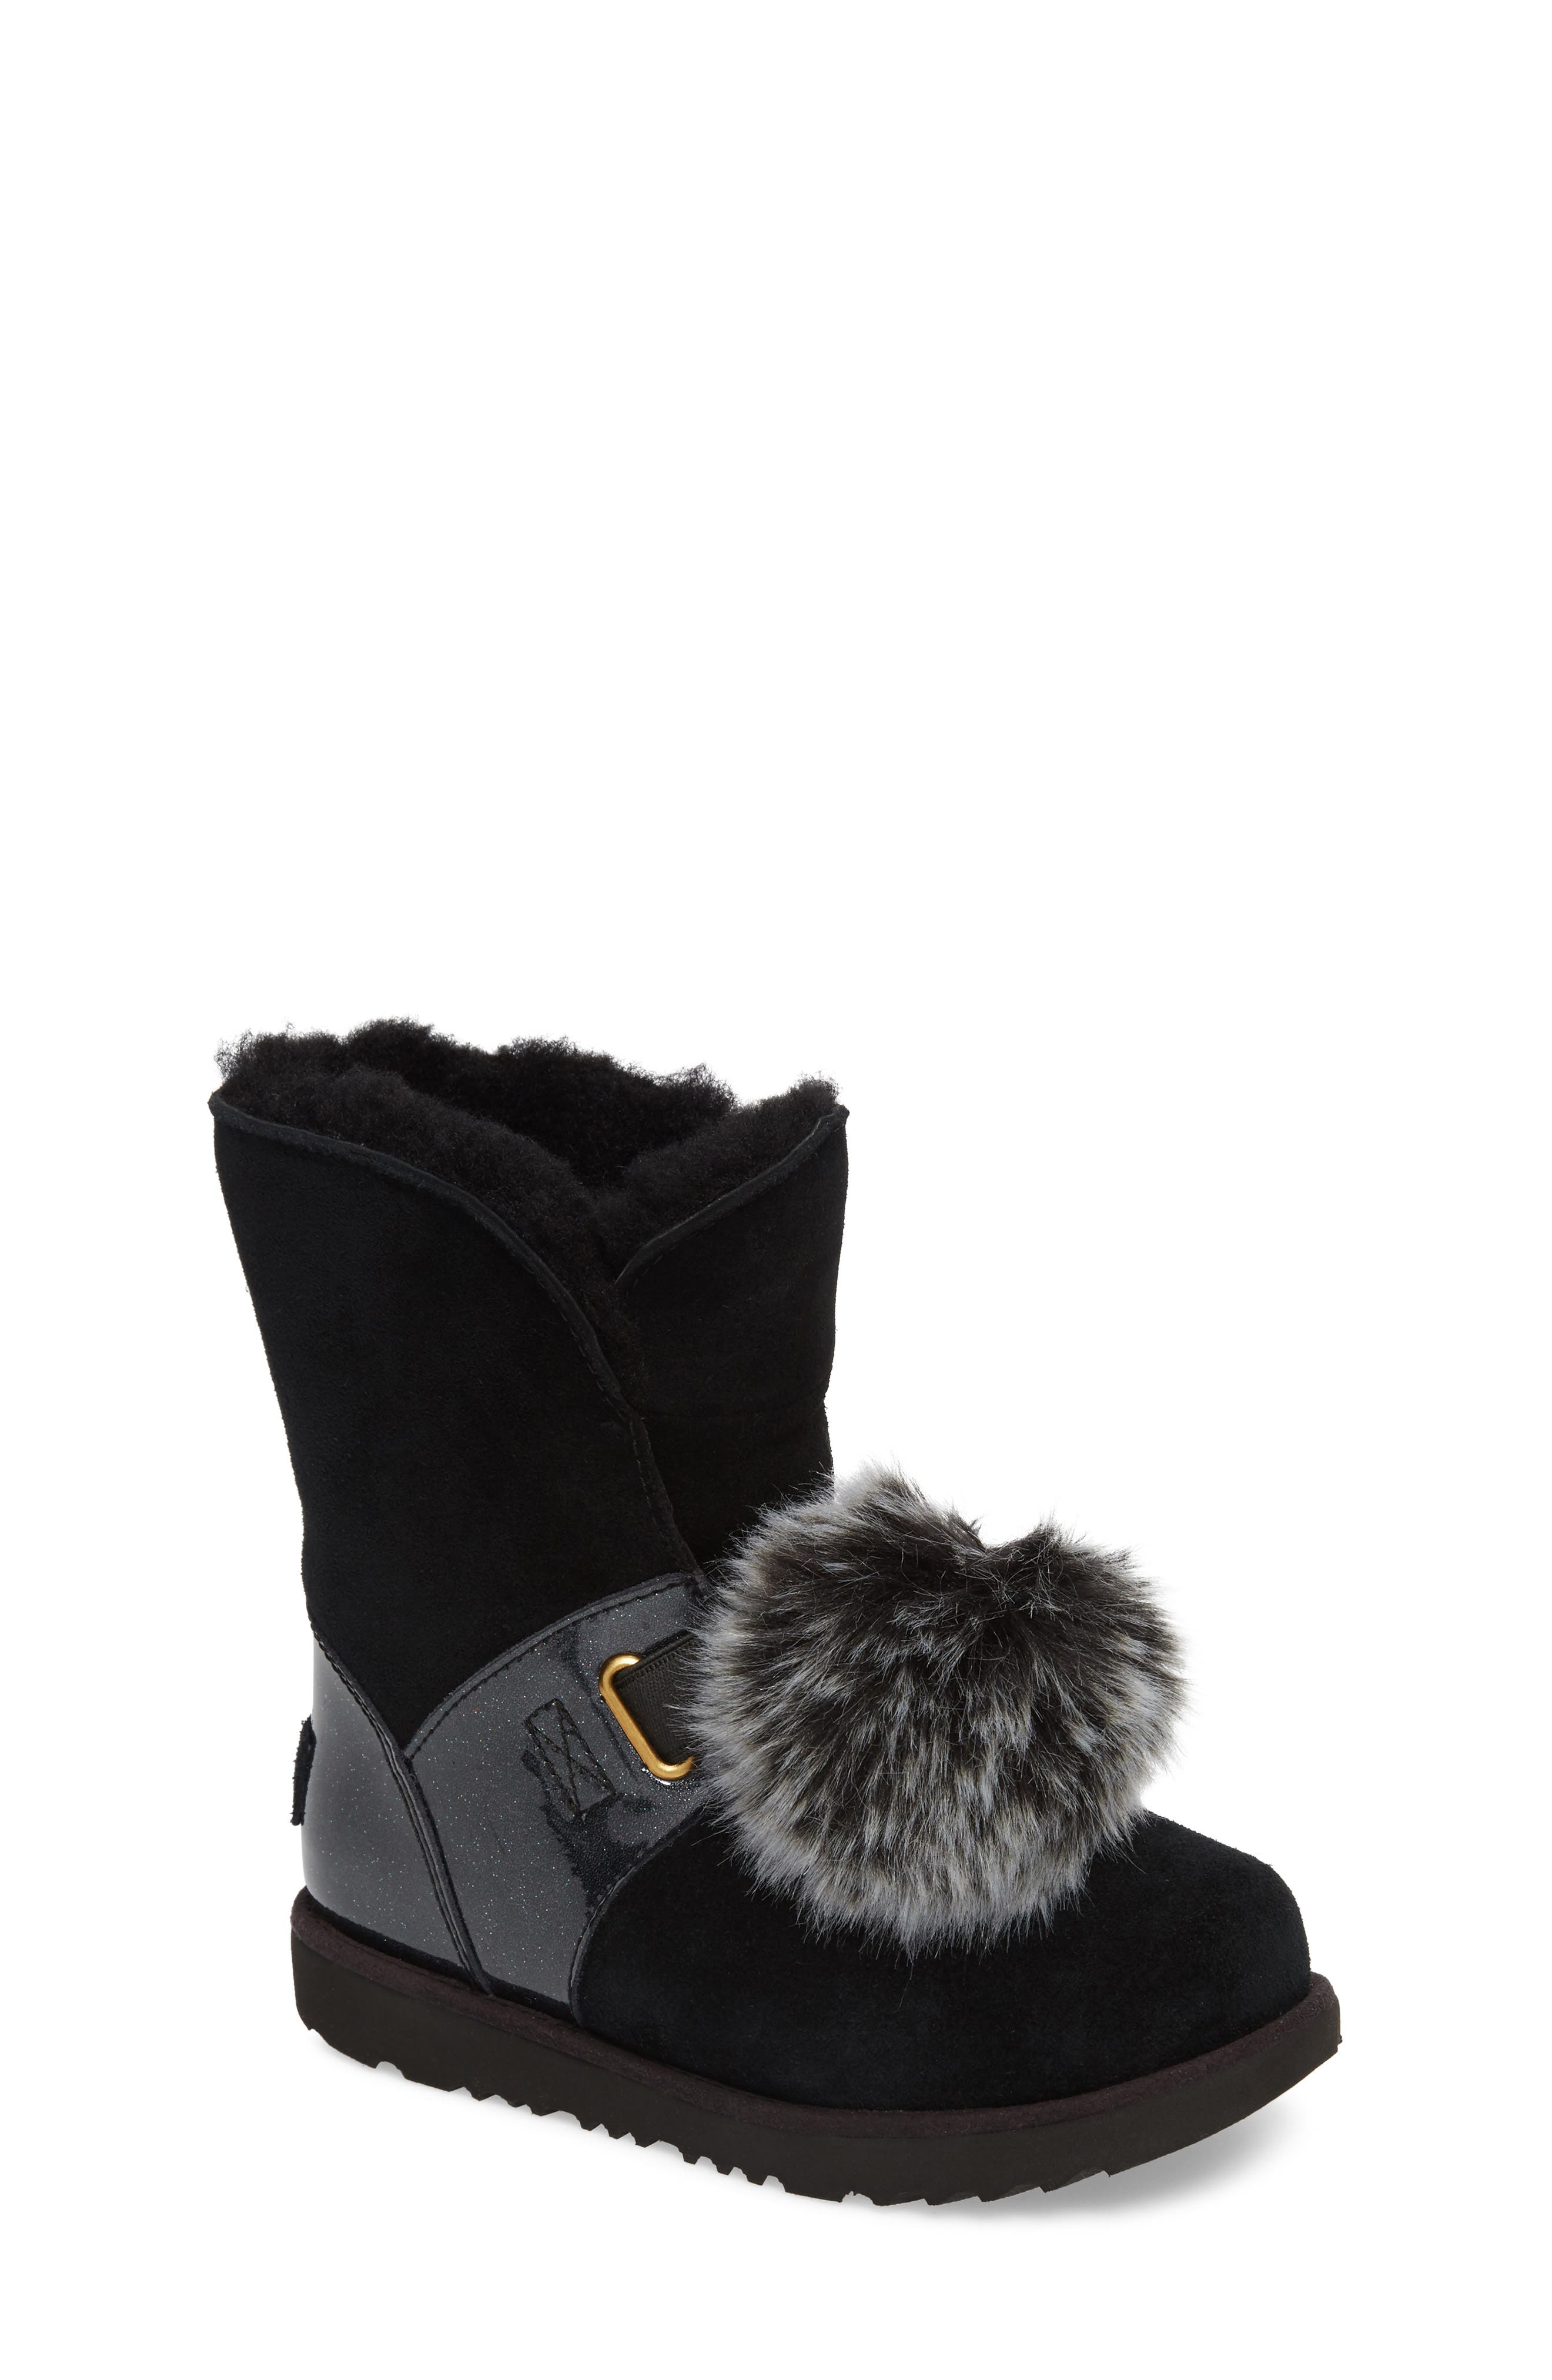 Isley Genuine Shearling Waterproof Pom Bootie,                             Main thumbnail 1, color,                             Black